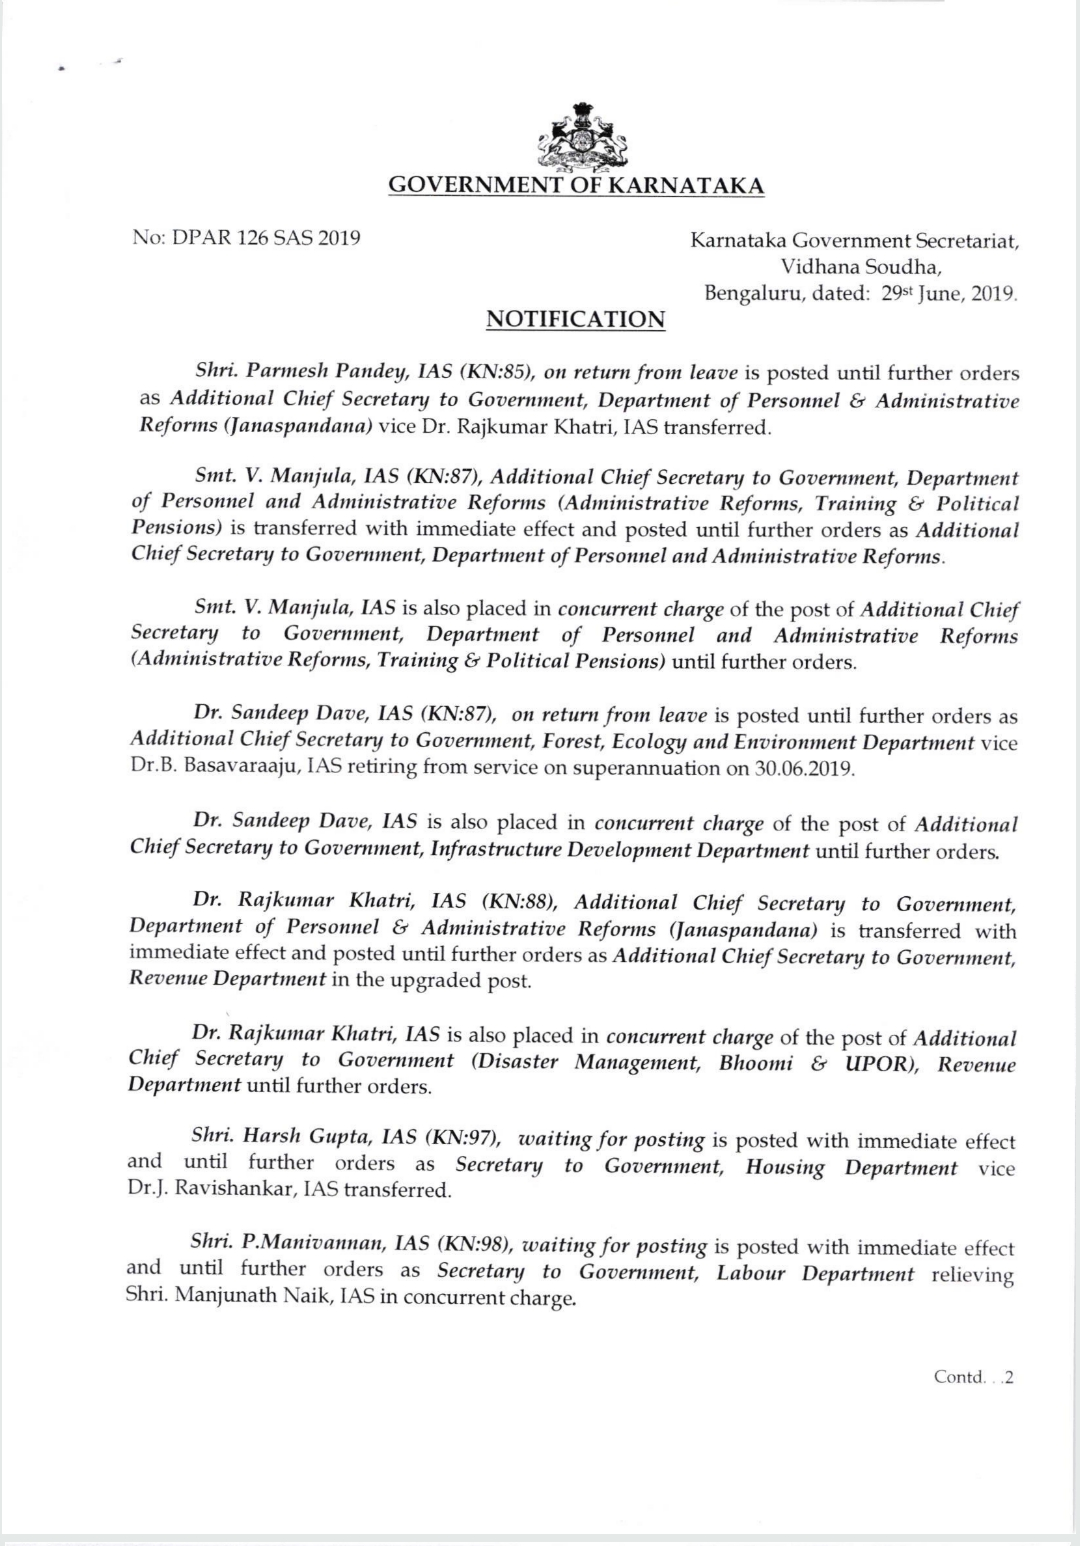 The transfer order of the Commissioner of Public Instruction, Mr. PC Japper Sir and several IAS officers